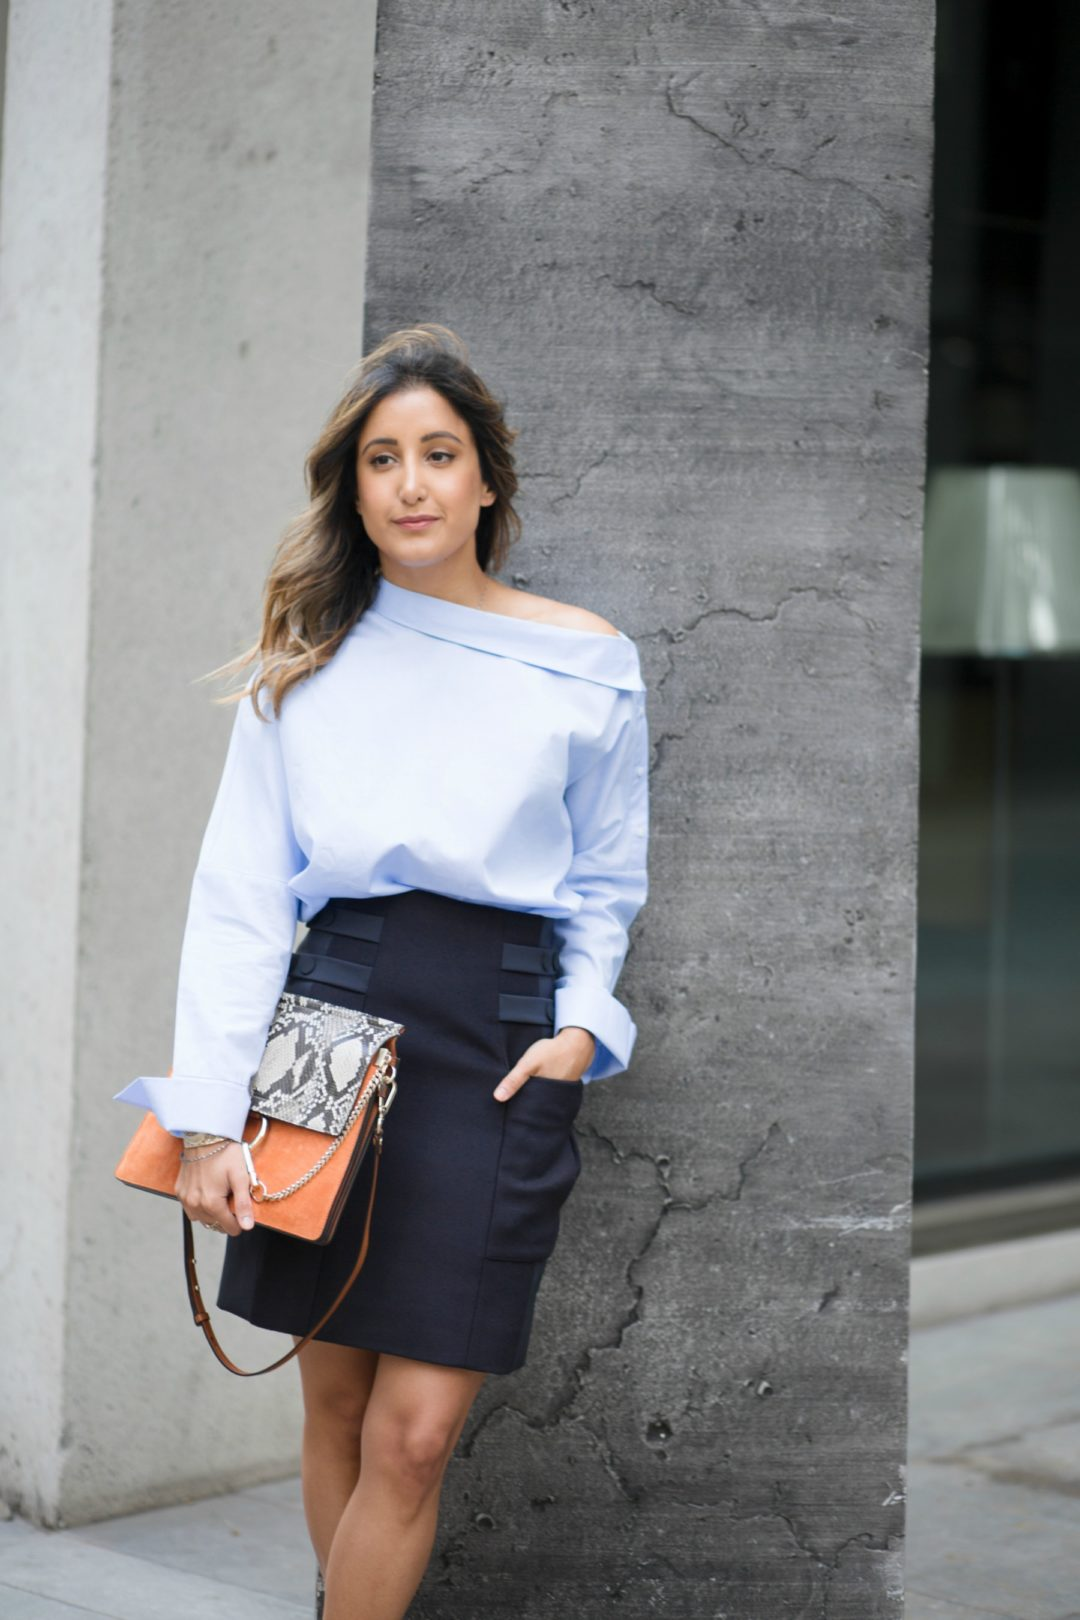 a02cff046e6 Off-the-shoulder blues - Office look with off-the-shoulder shirt